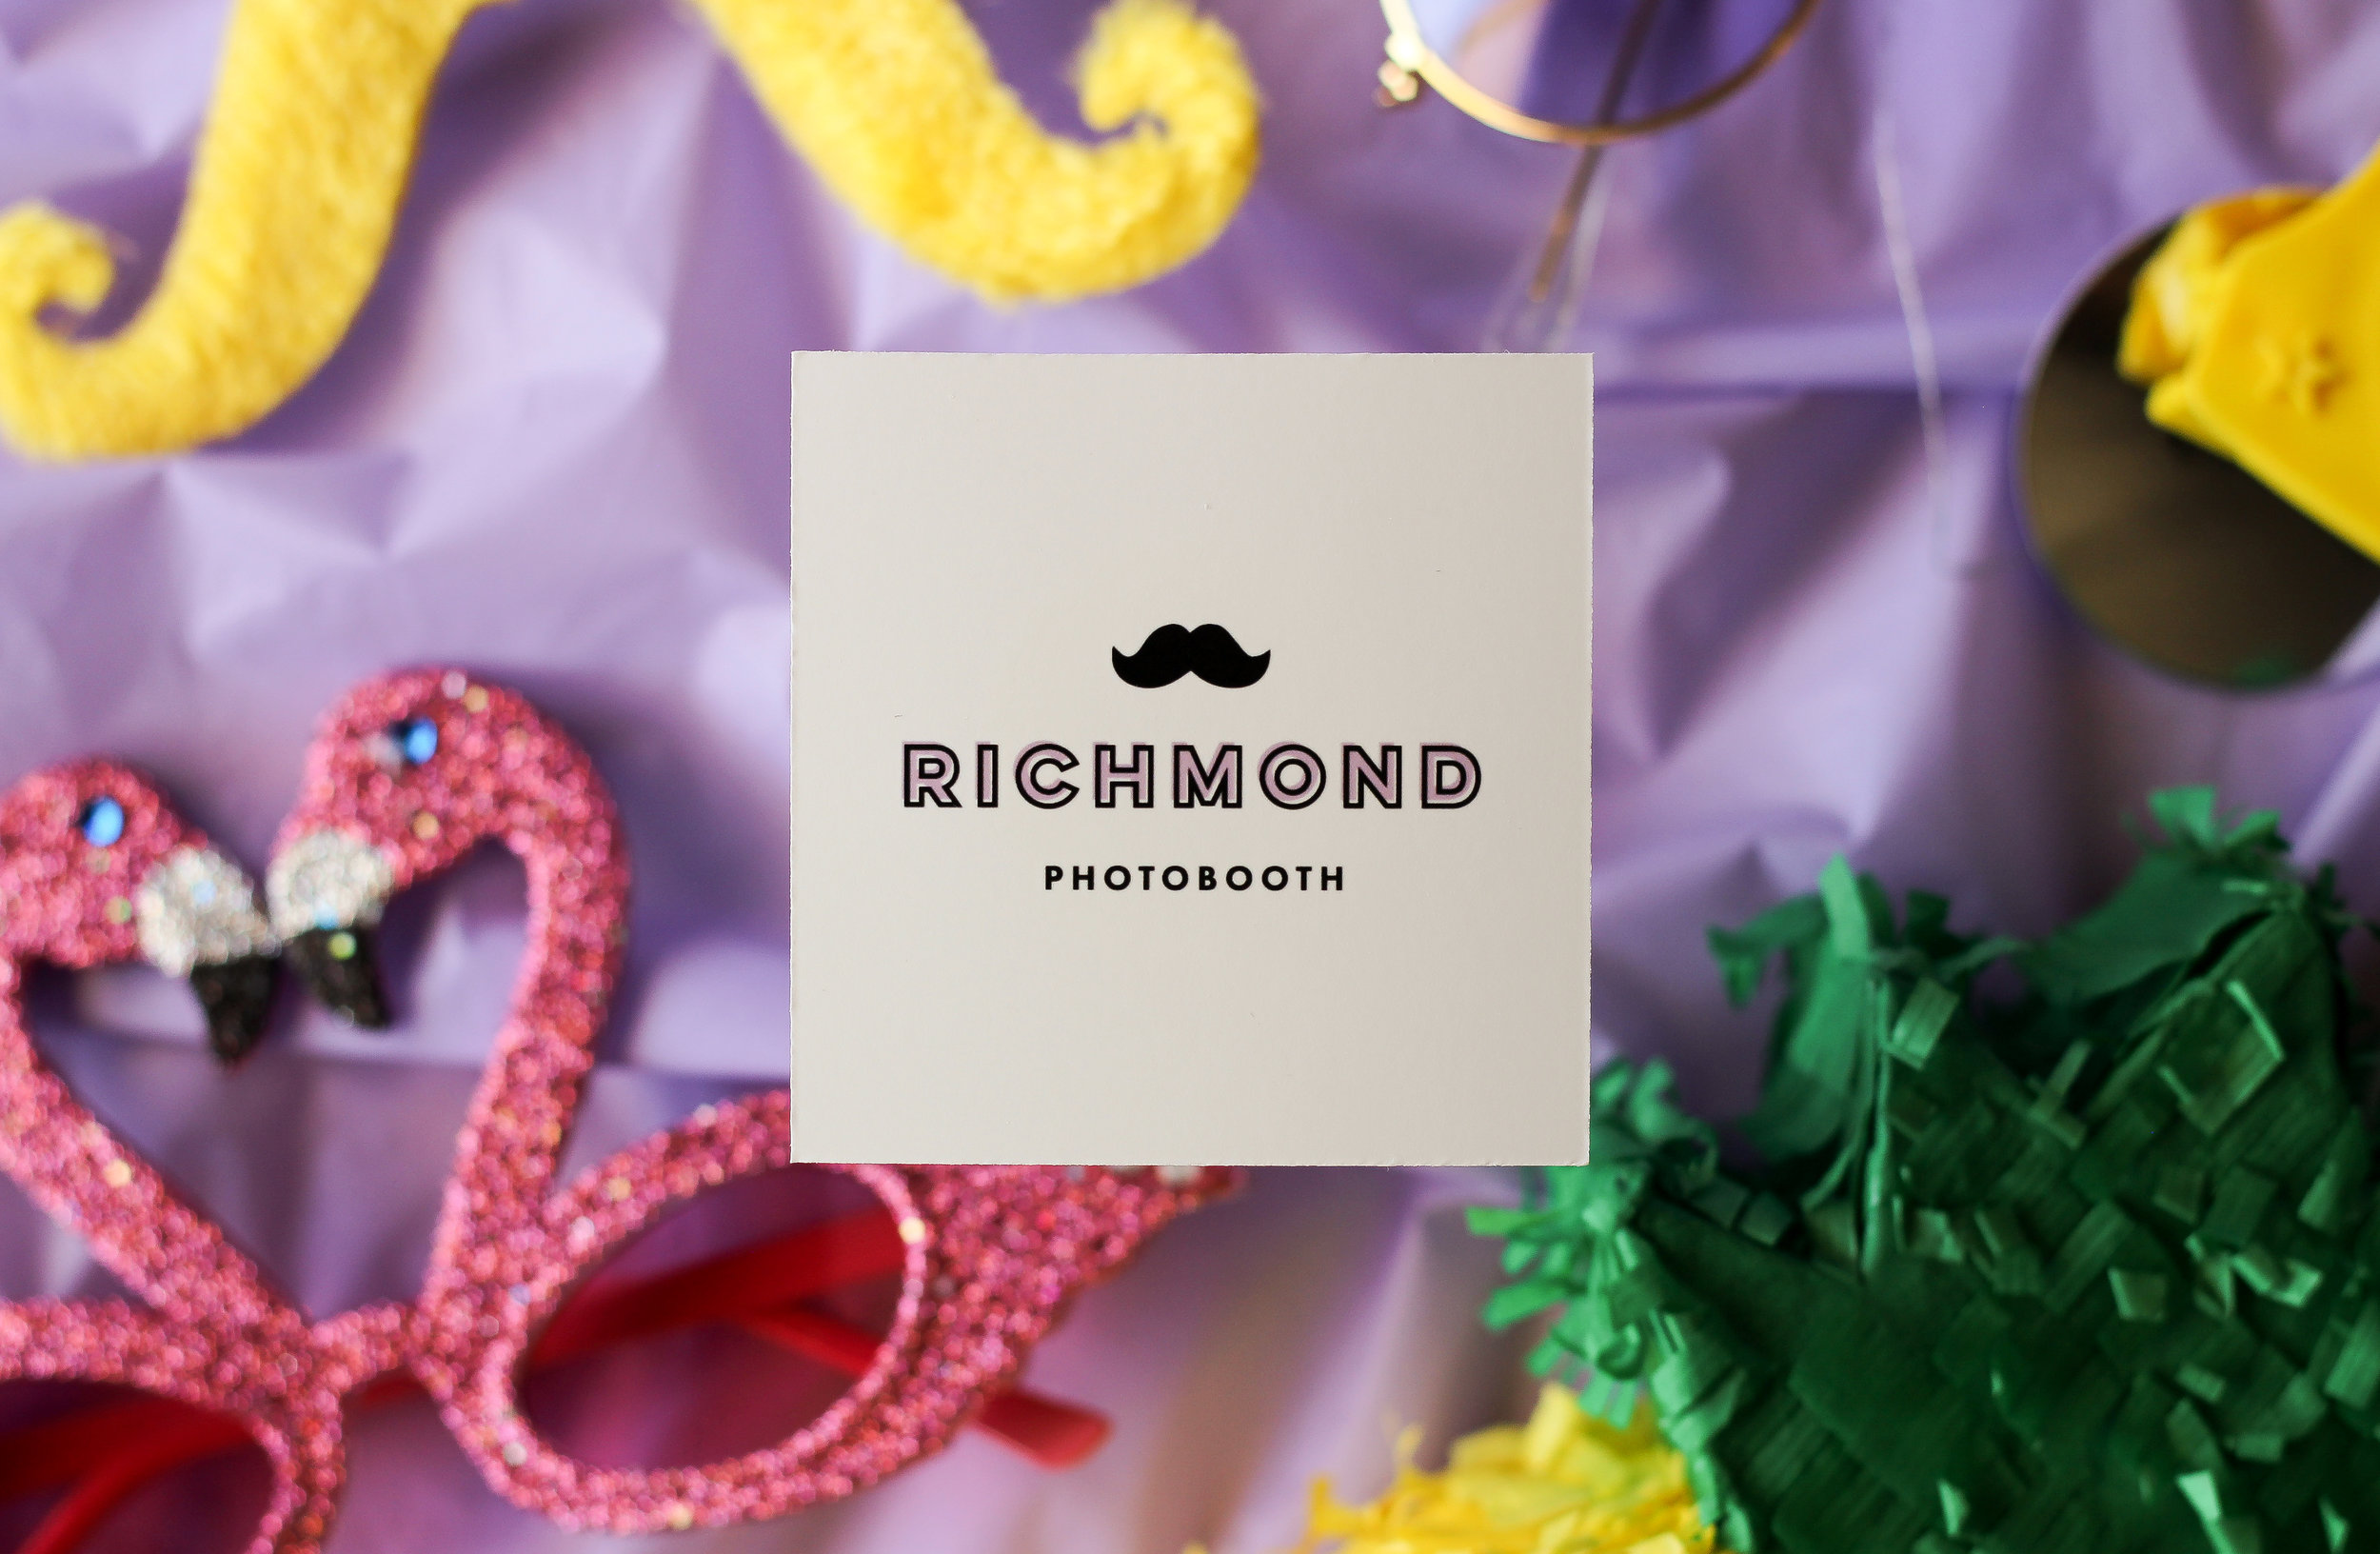 Richmond Photobooth